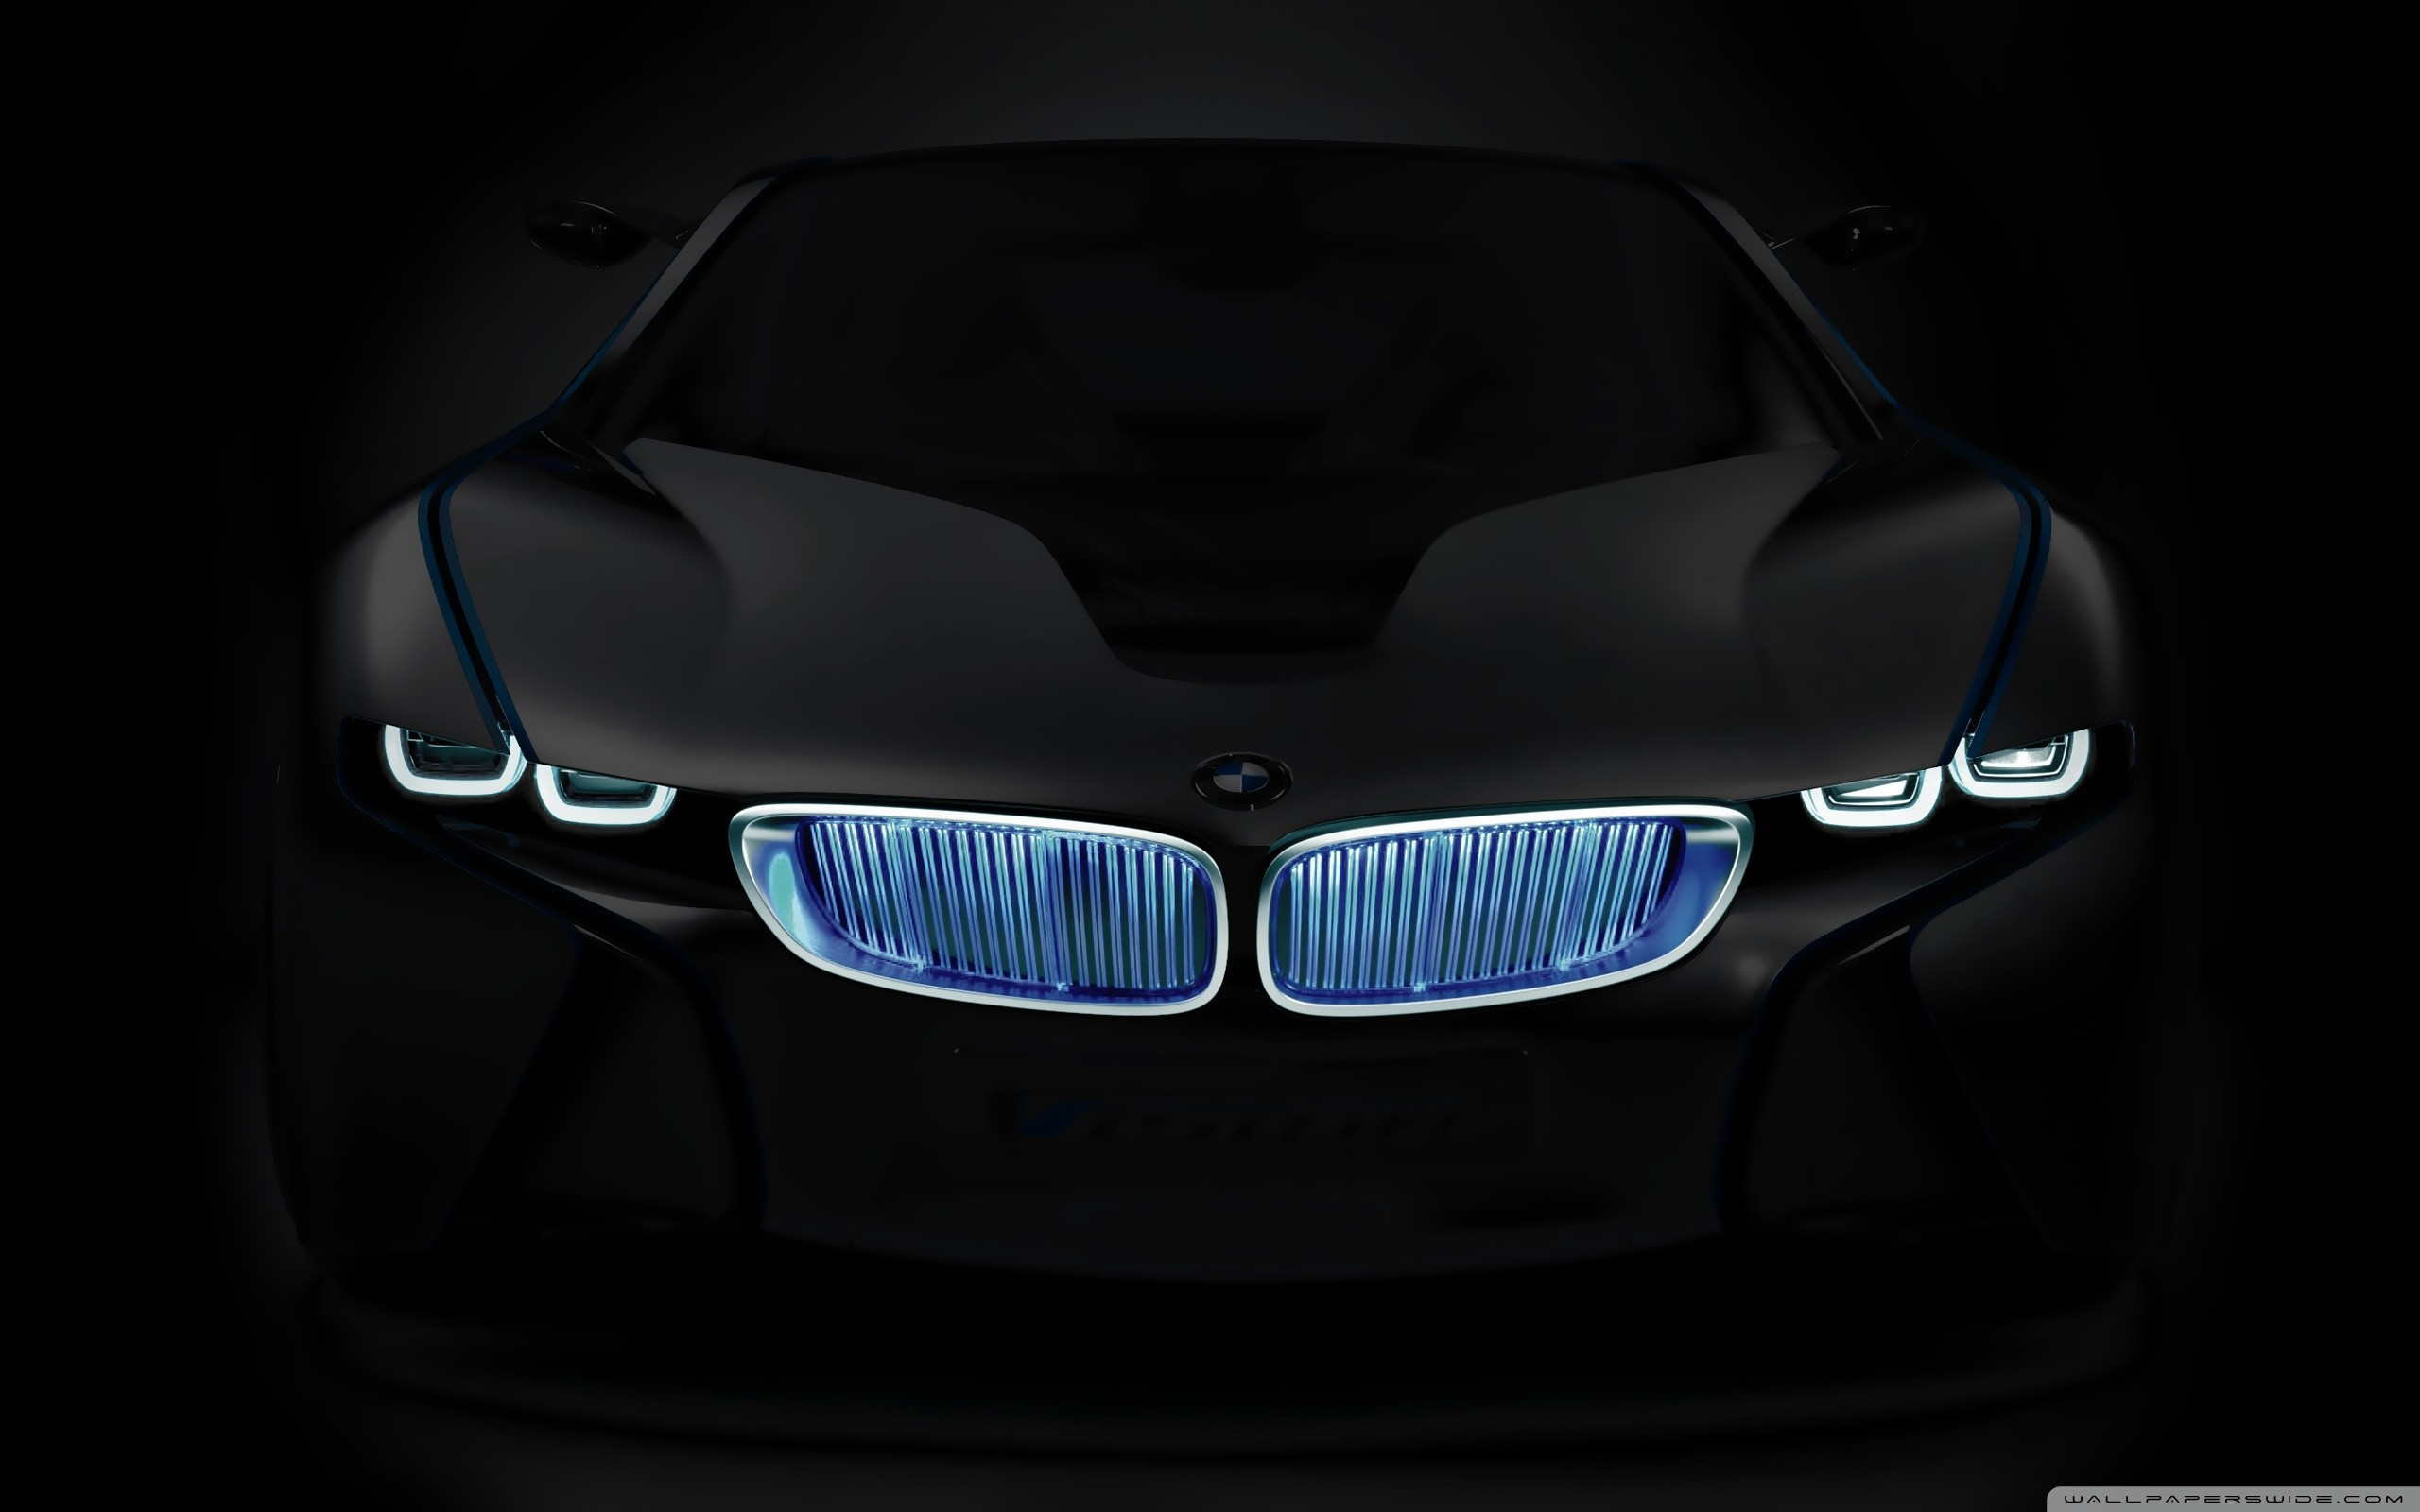 General 2560x1600 BMW car vehicle BMW i8 BMW Vision